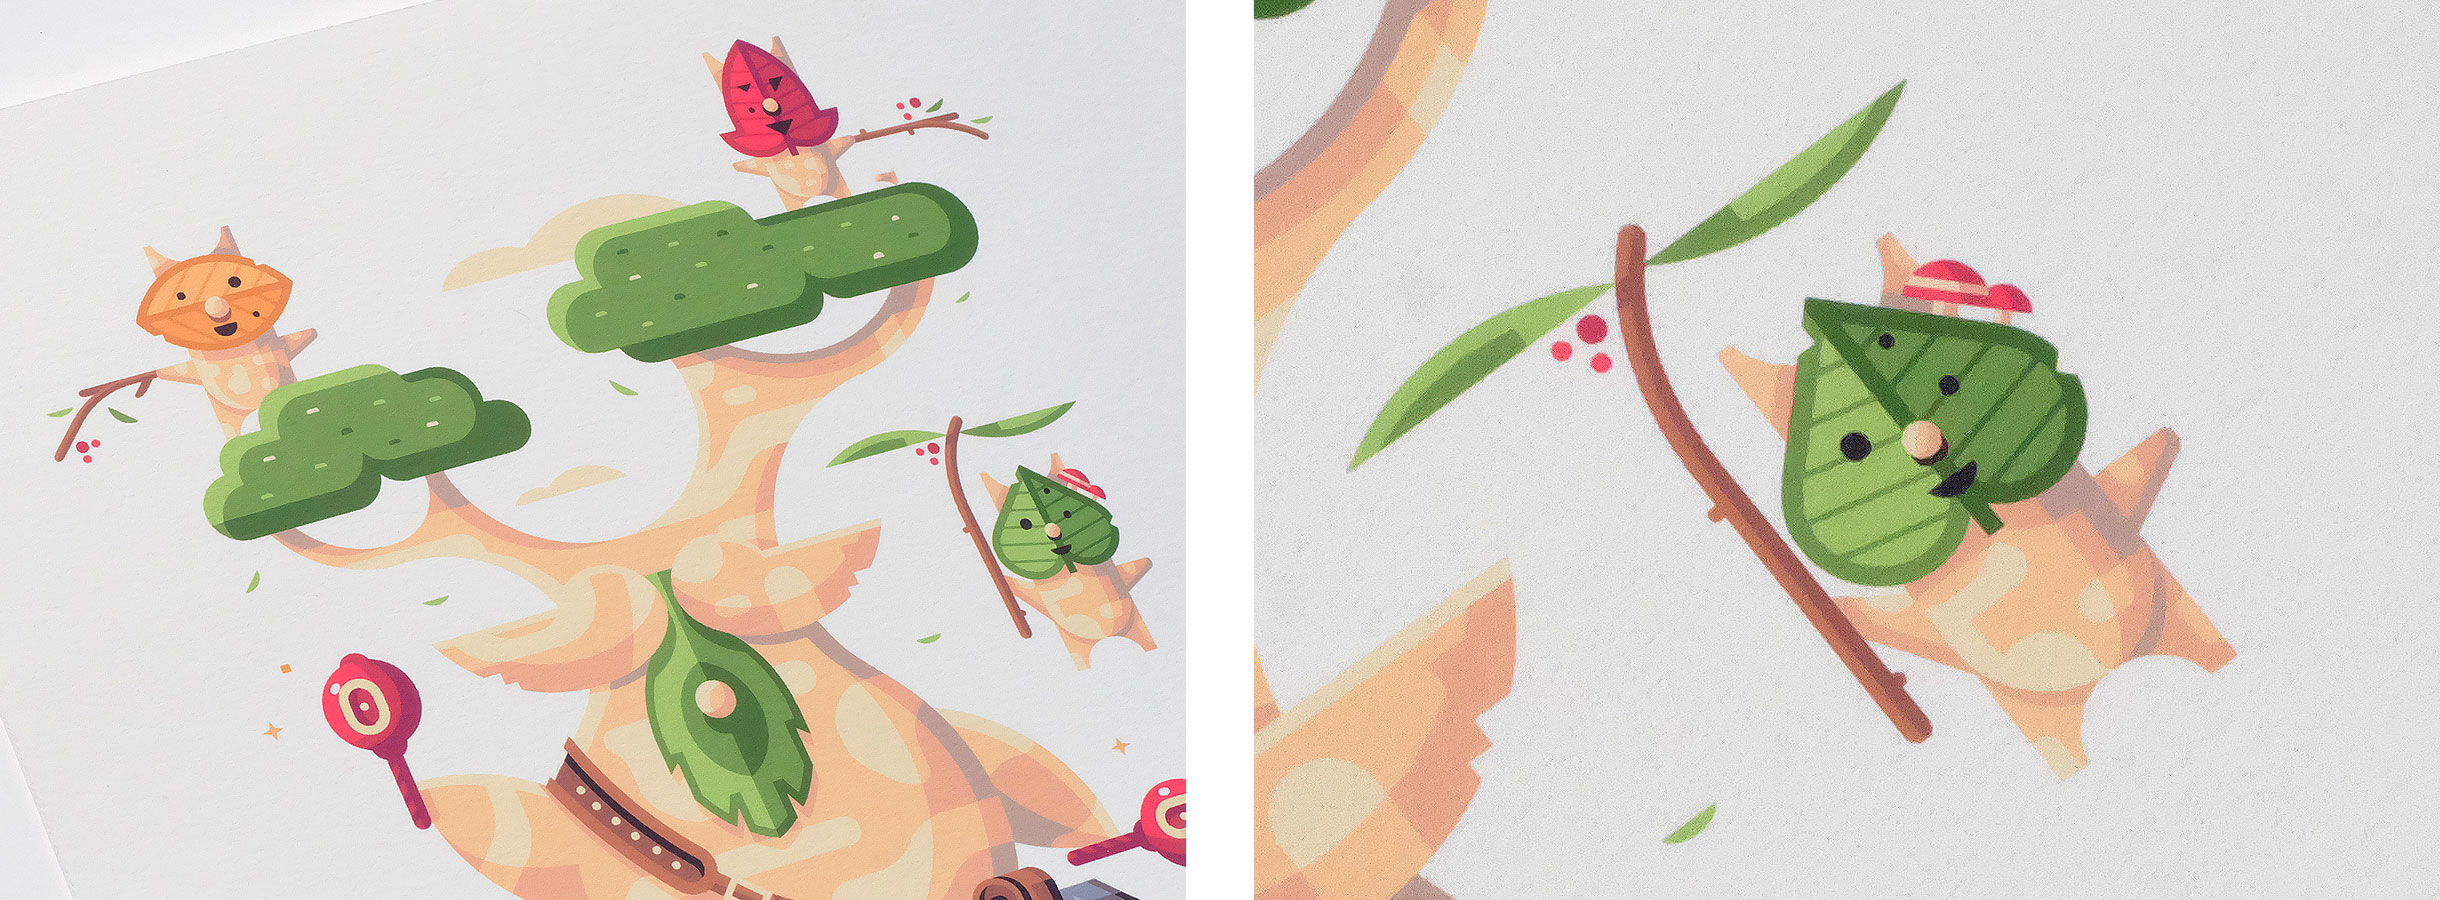 Wild series by Matt Anderson. Inspired by Zelda Breath of the Wild. Print detail of Children of the Forest (Hestu / Koroks).